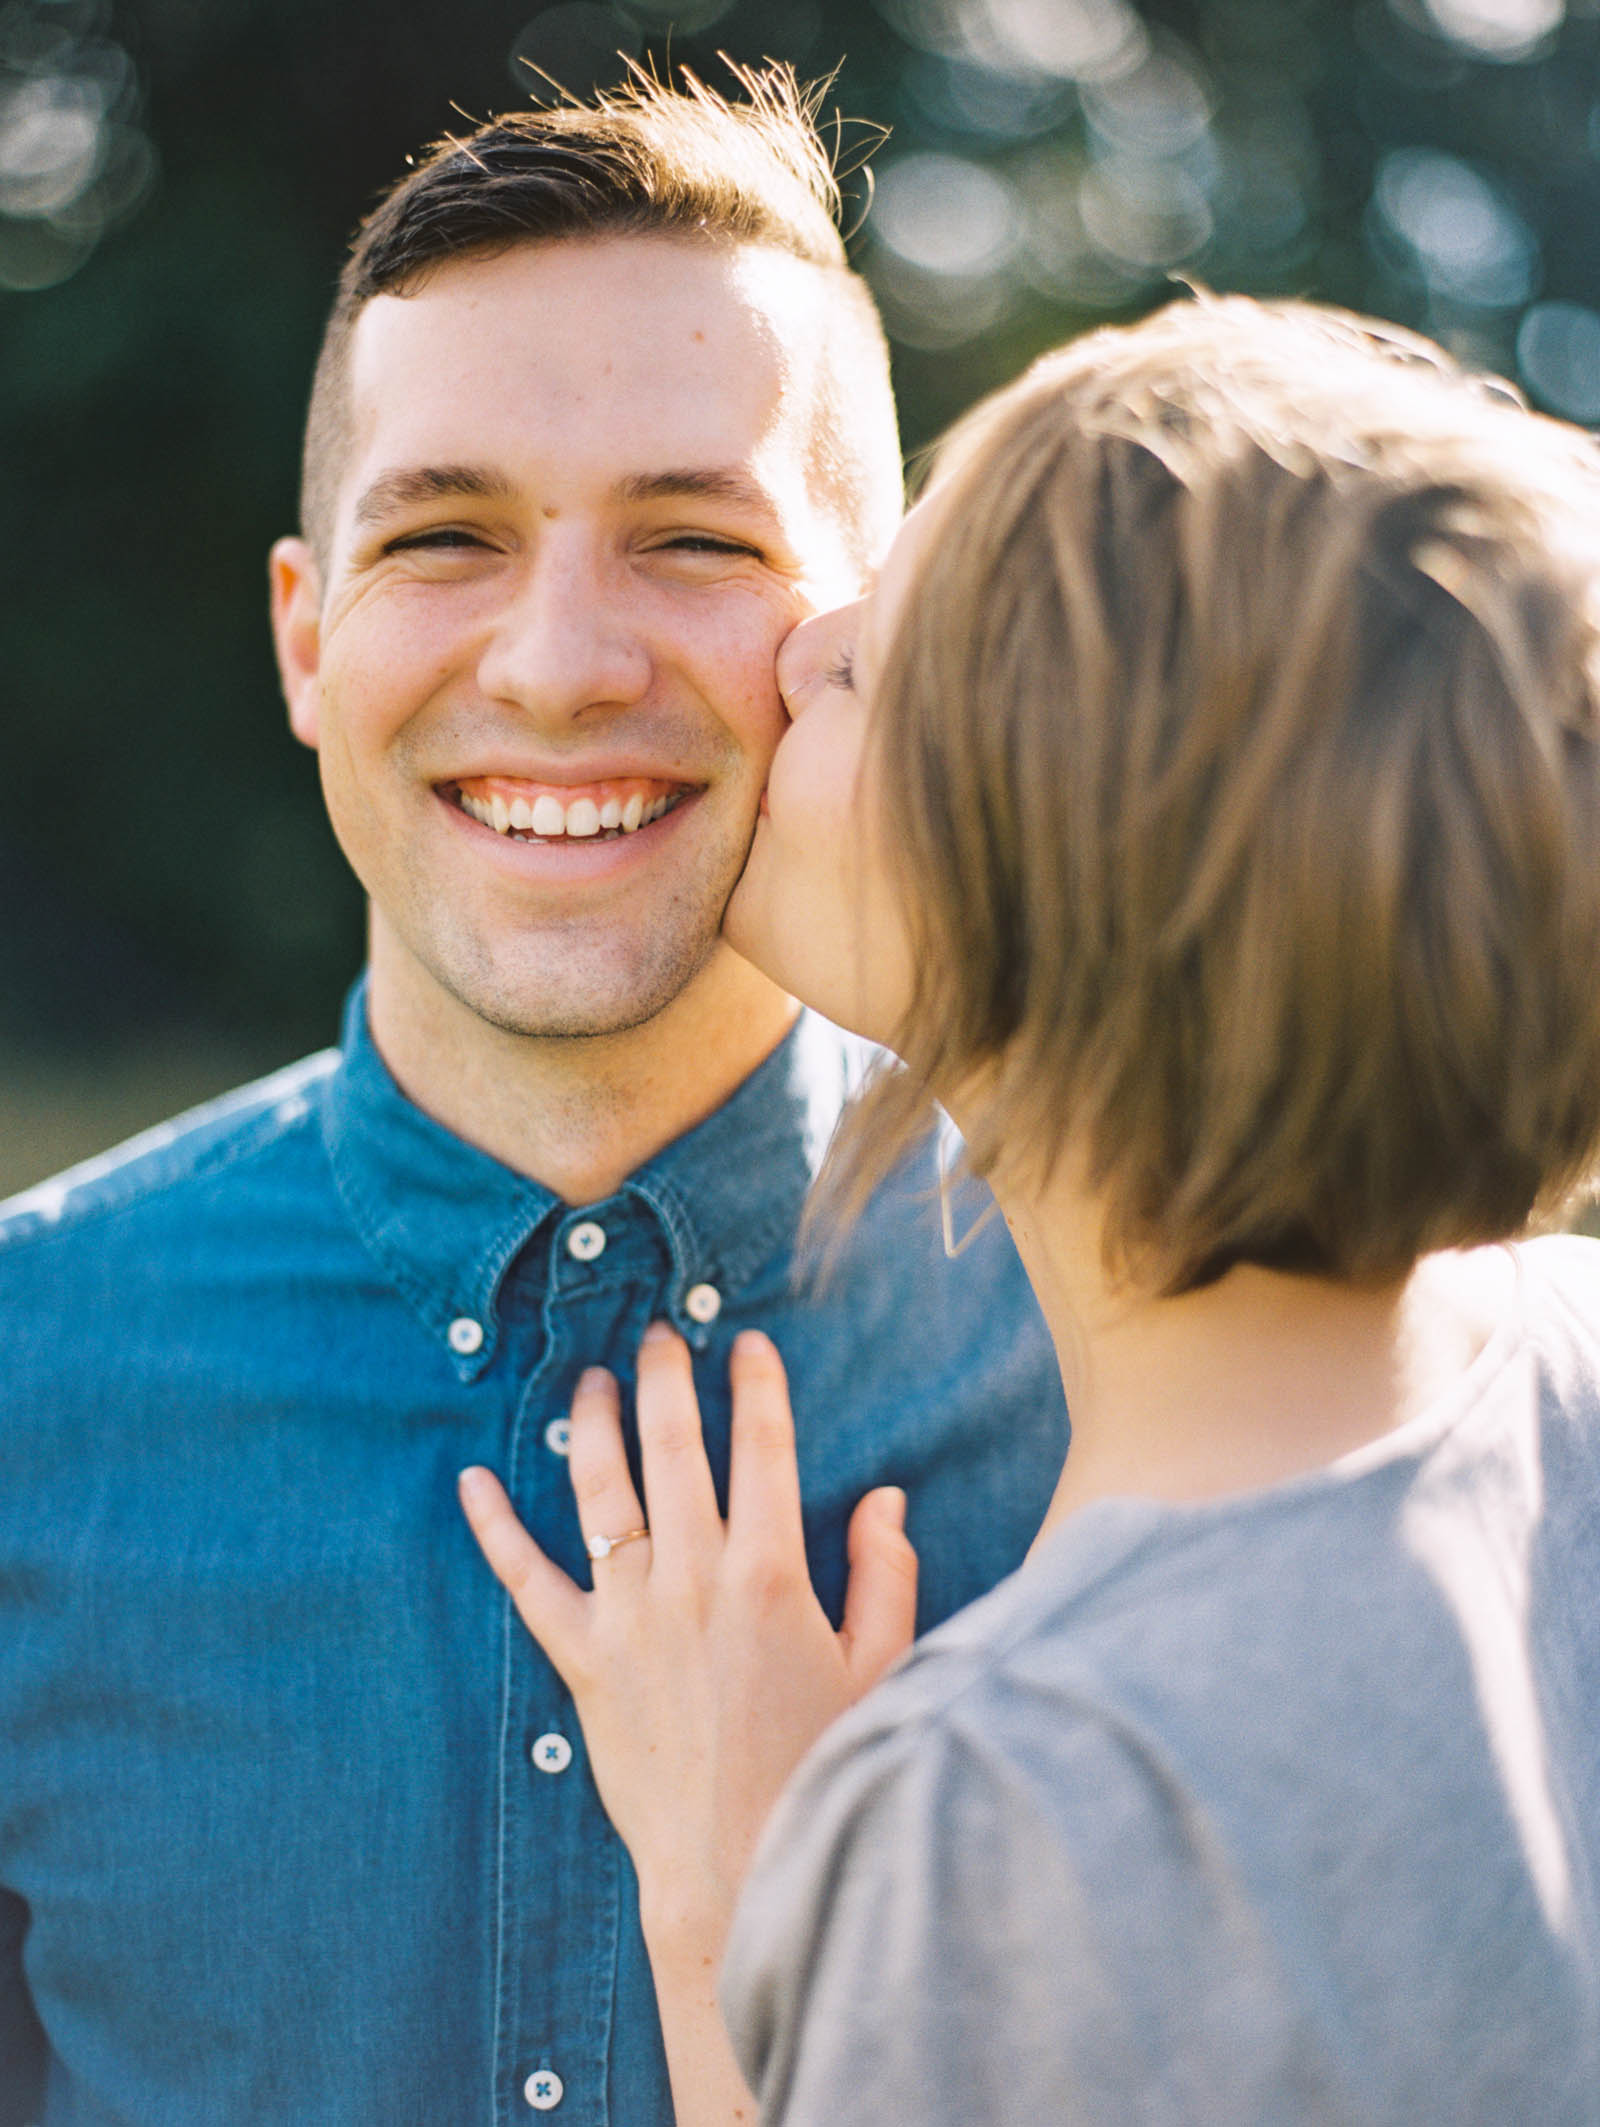 Authentic Seattle Engagement Session at Discovery park captured by top Seattle Wedding Photographer Anna Peters